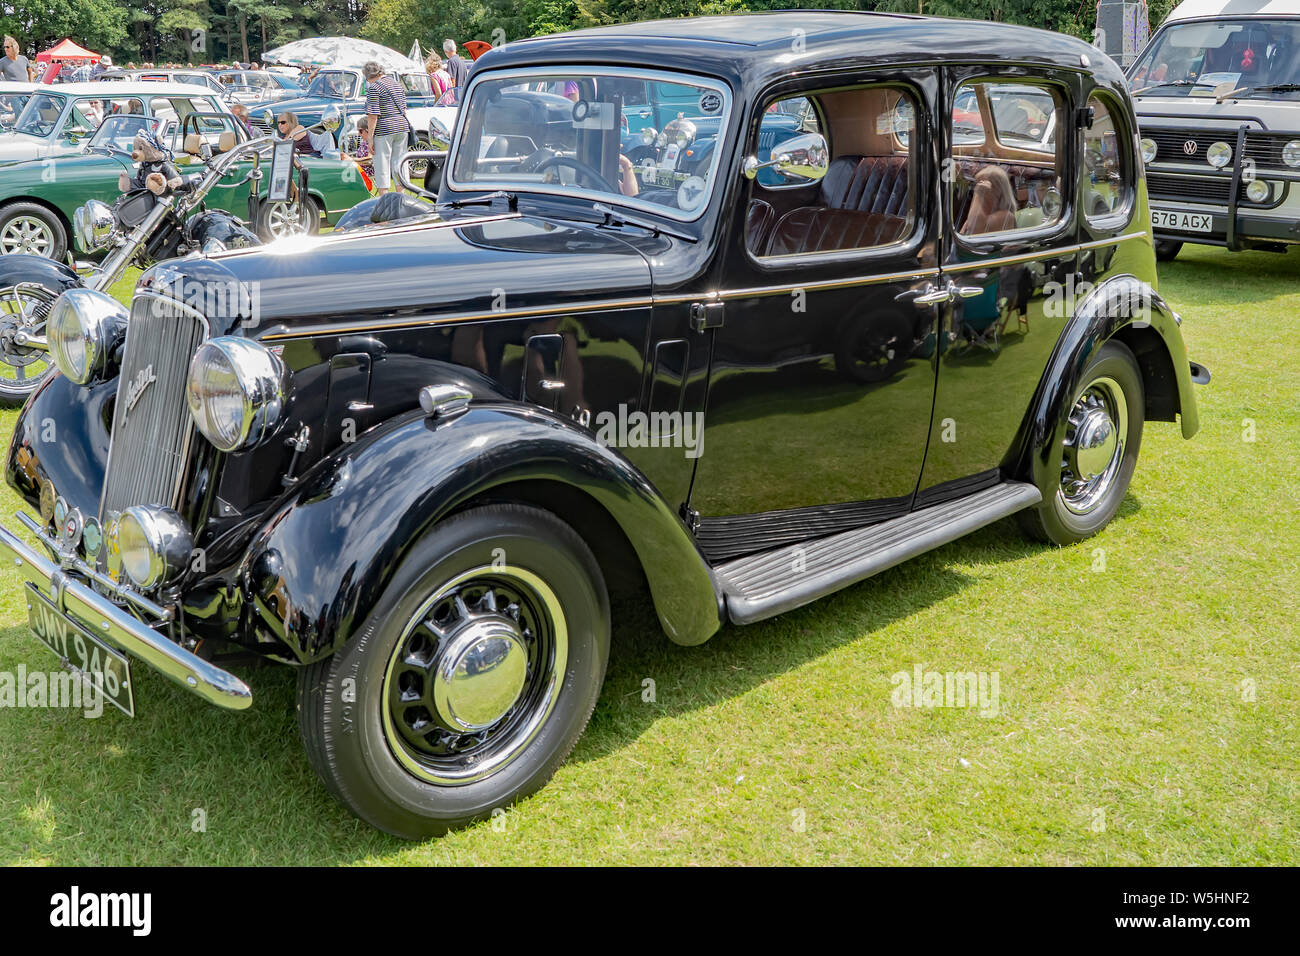 Austin 10 High Resolution Stock Photography And Images Alamy